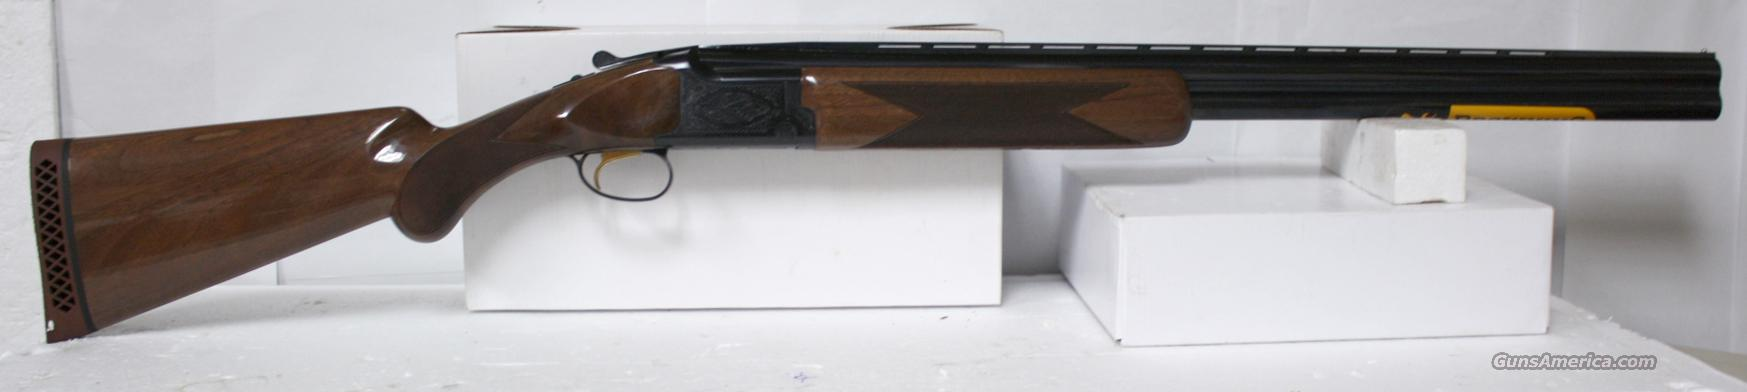 "BROWNING CITORI GRADE I LIGHTNING 12GA 28"" 3"" INVECTOR PLUS NEW IN BOX BLACK FRIDAY  Guns > Shotguns > Browning Shotguns > Over Unders > Citori > Hunting"